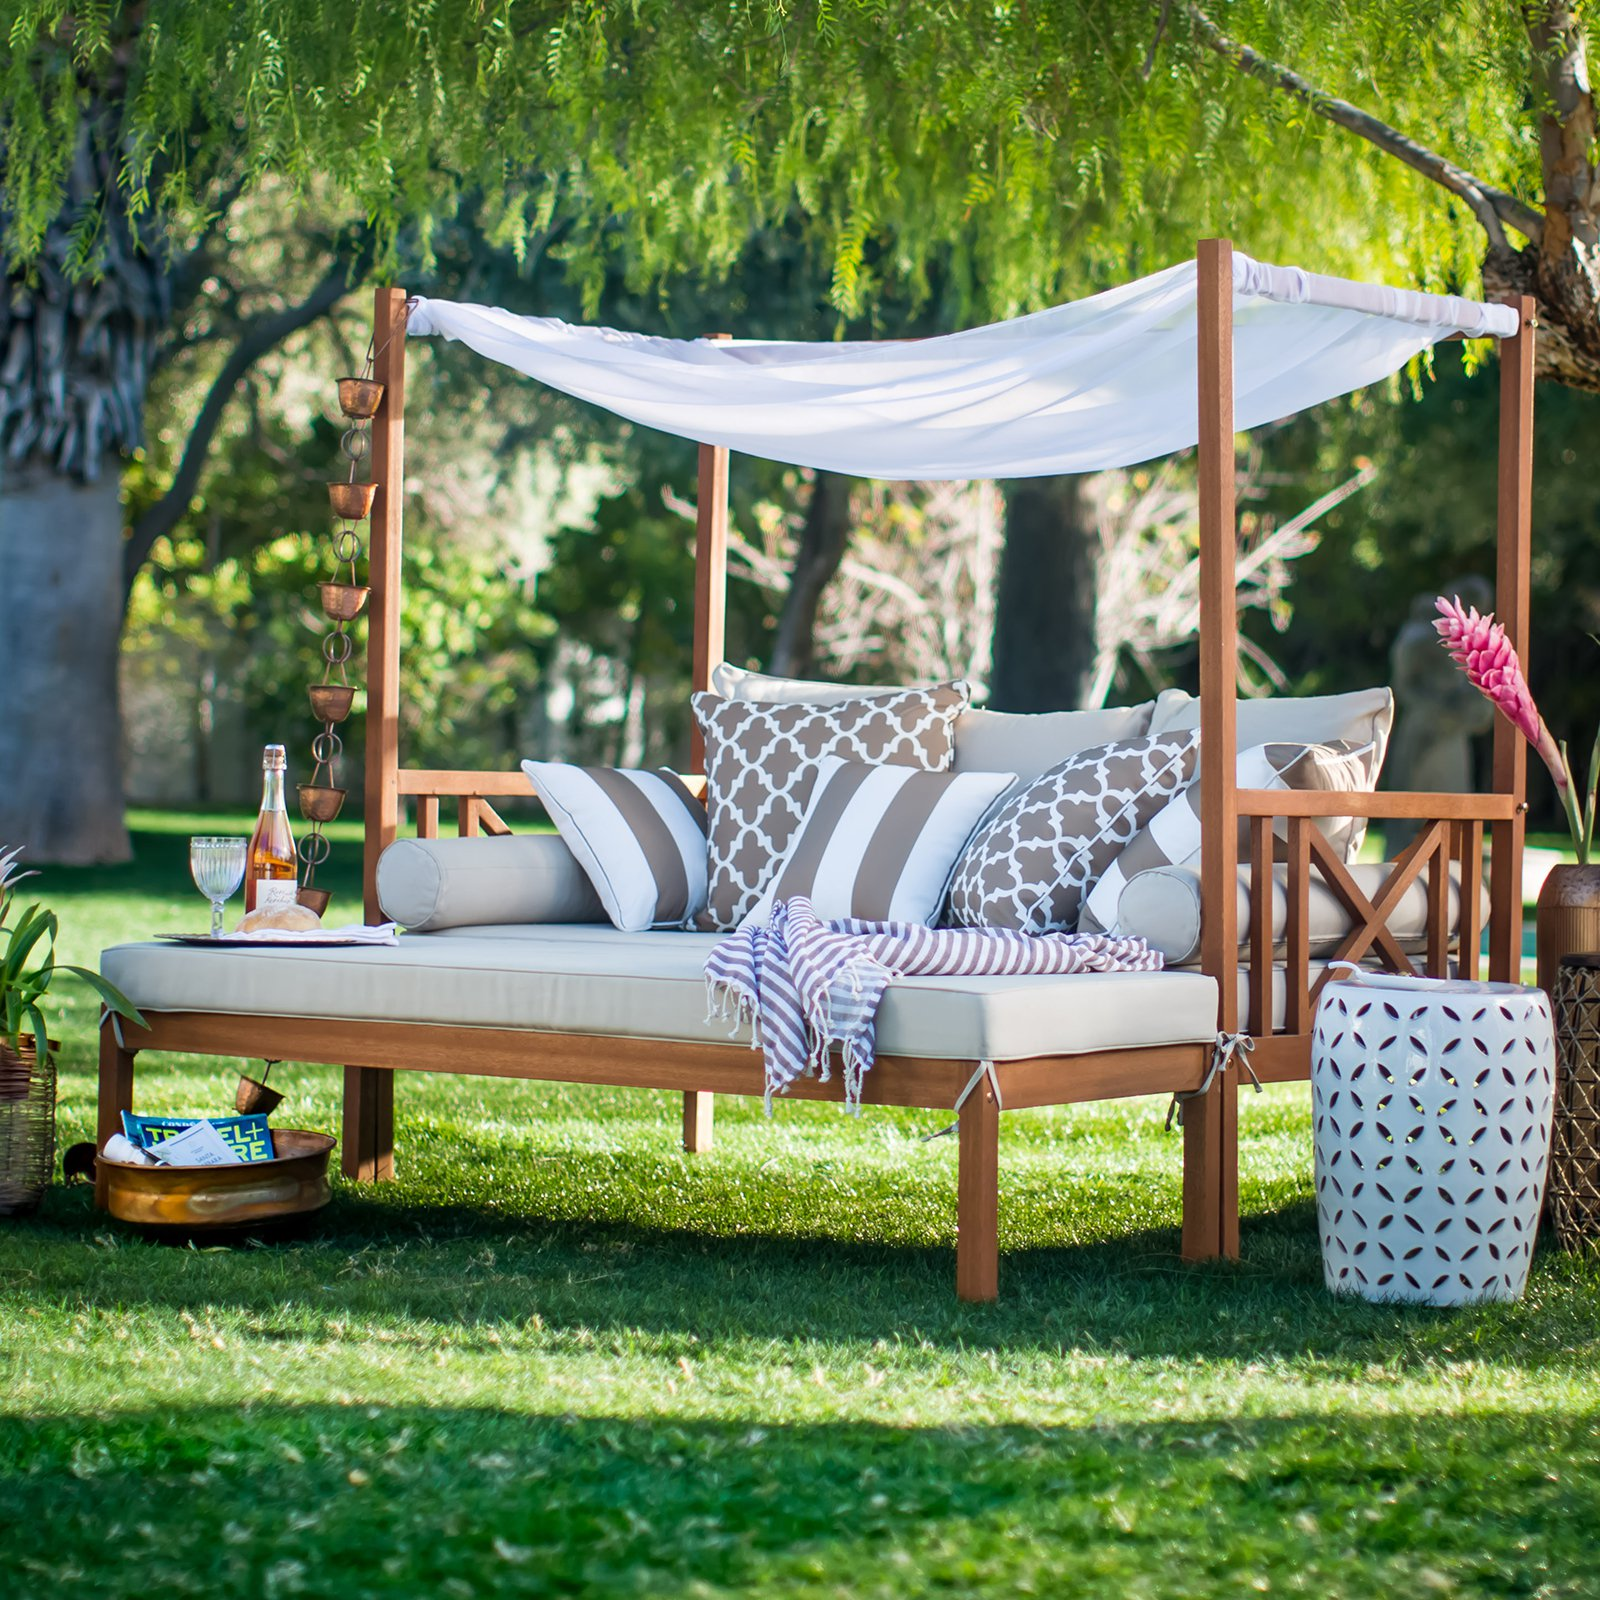 outdoor patio daybed. Belham Living Brighton Outdoor Daybed And Ottoman - Natural Walmart.com Patio A